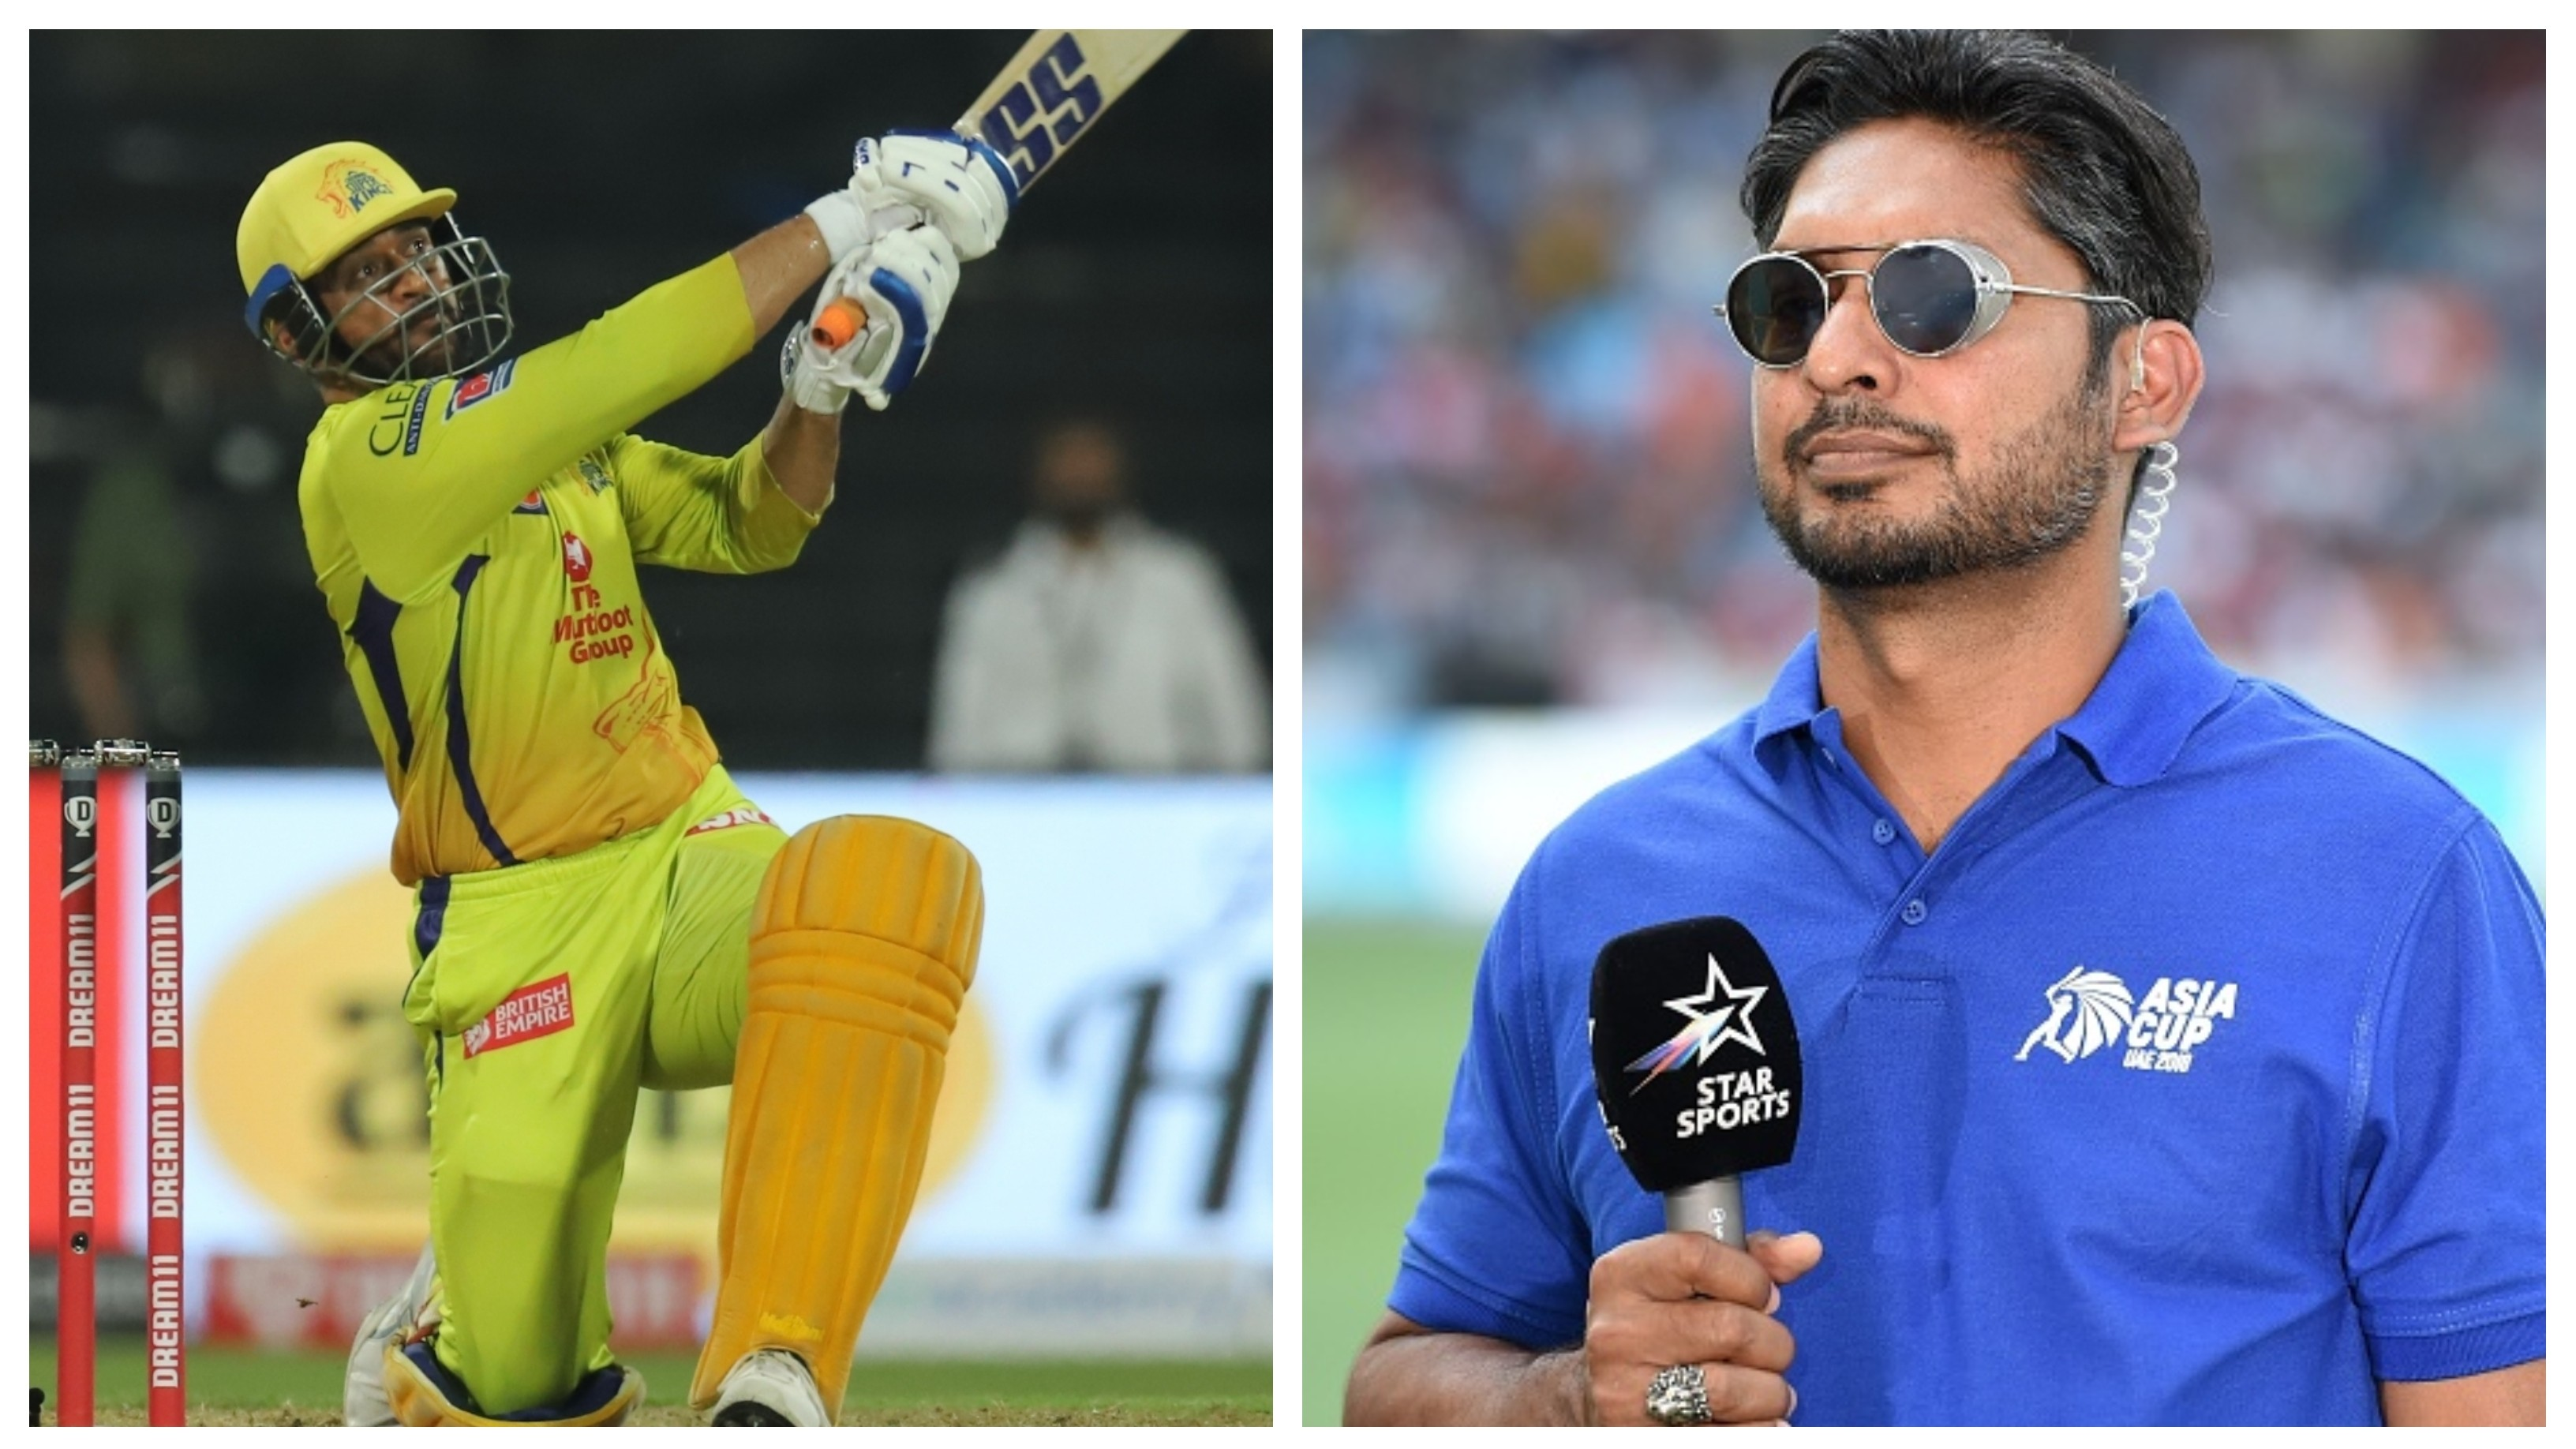 IPL 2020: Dhoni must get some competitive cricket under his belt before next season - Sangakkara